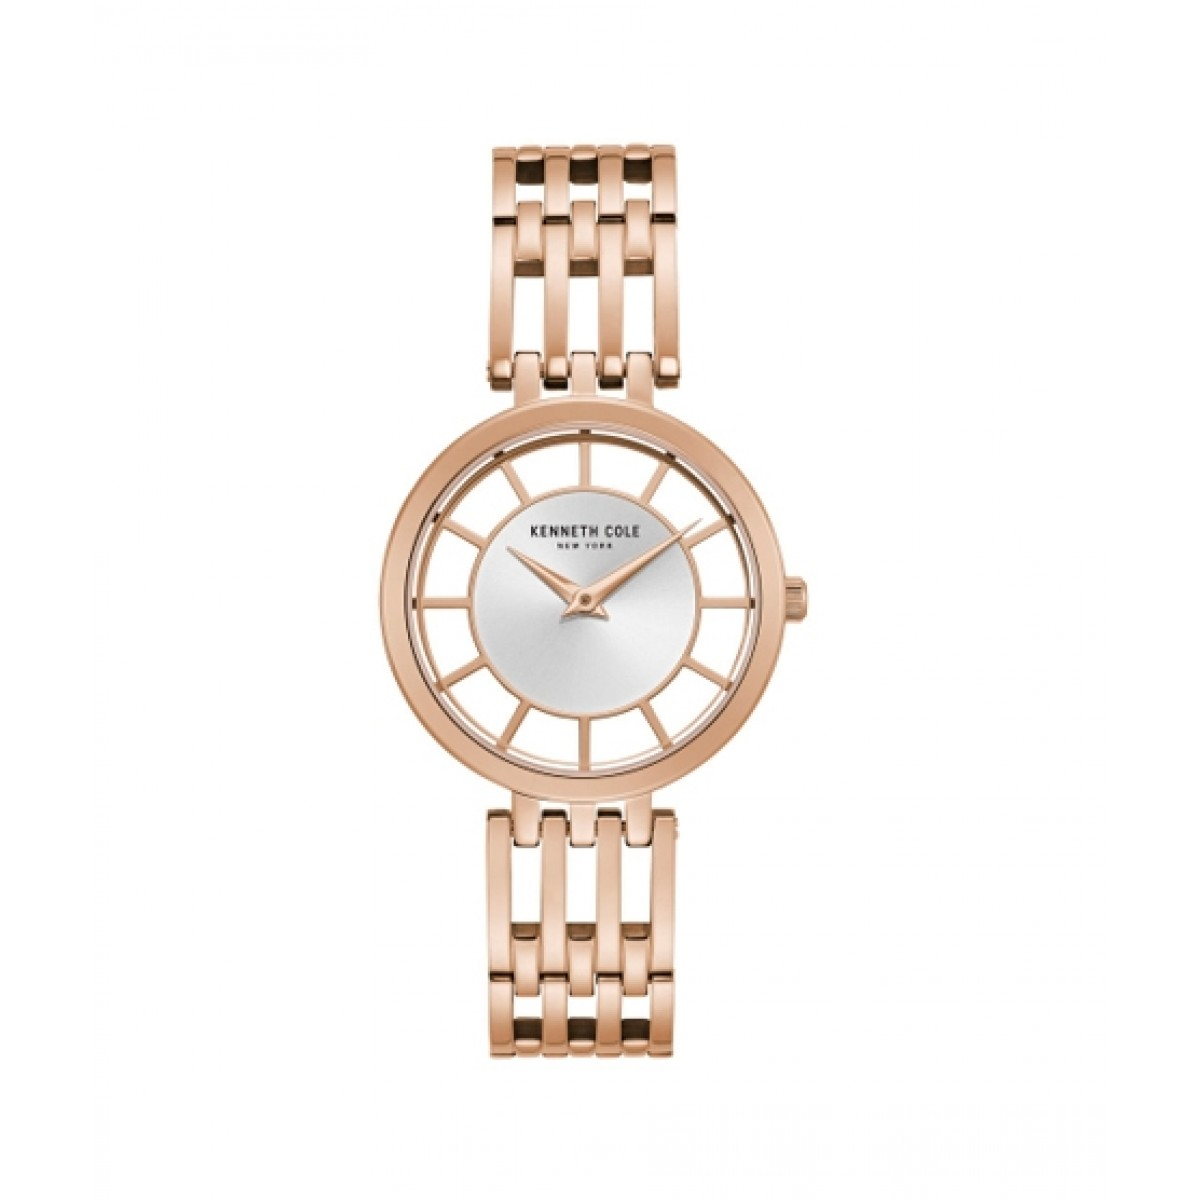 Kenneth Cole New York Analog Women's Watch Rose Gold (KC50781002)